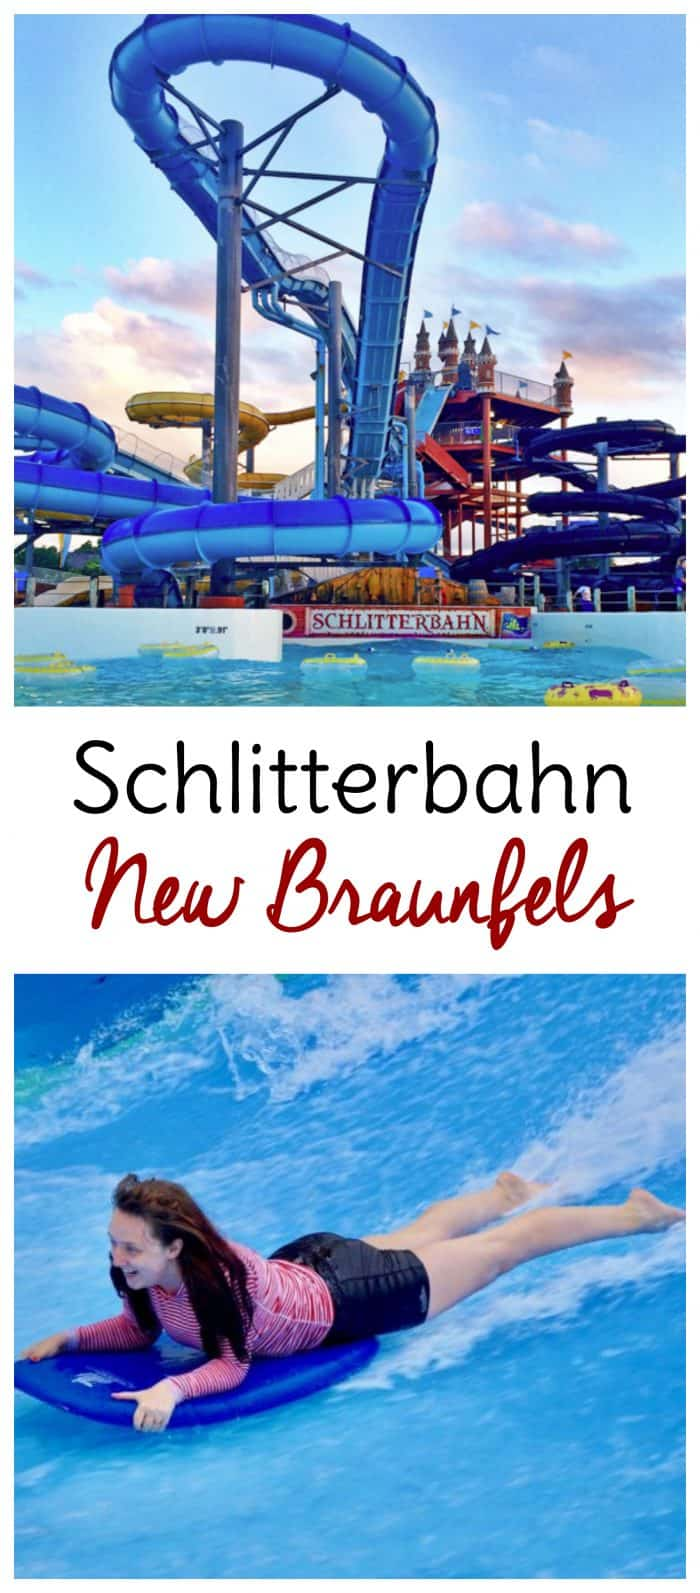 Schlitterbahn Waterpark Resort New Braunfels